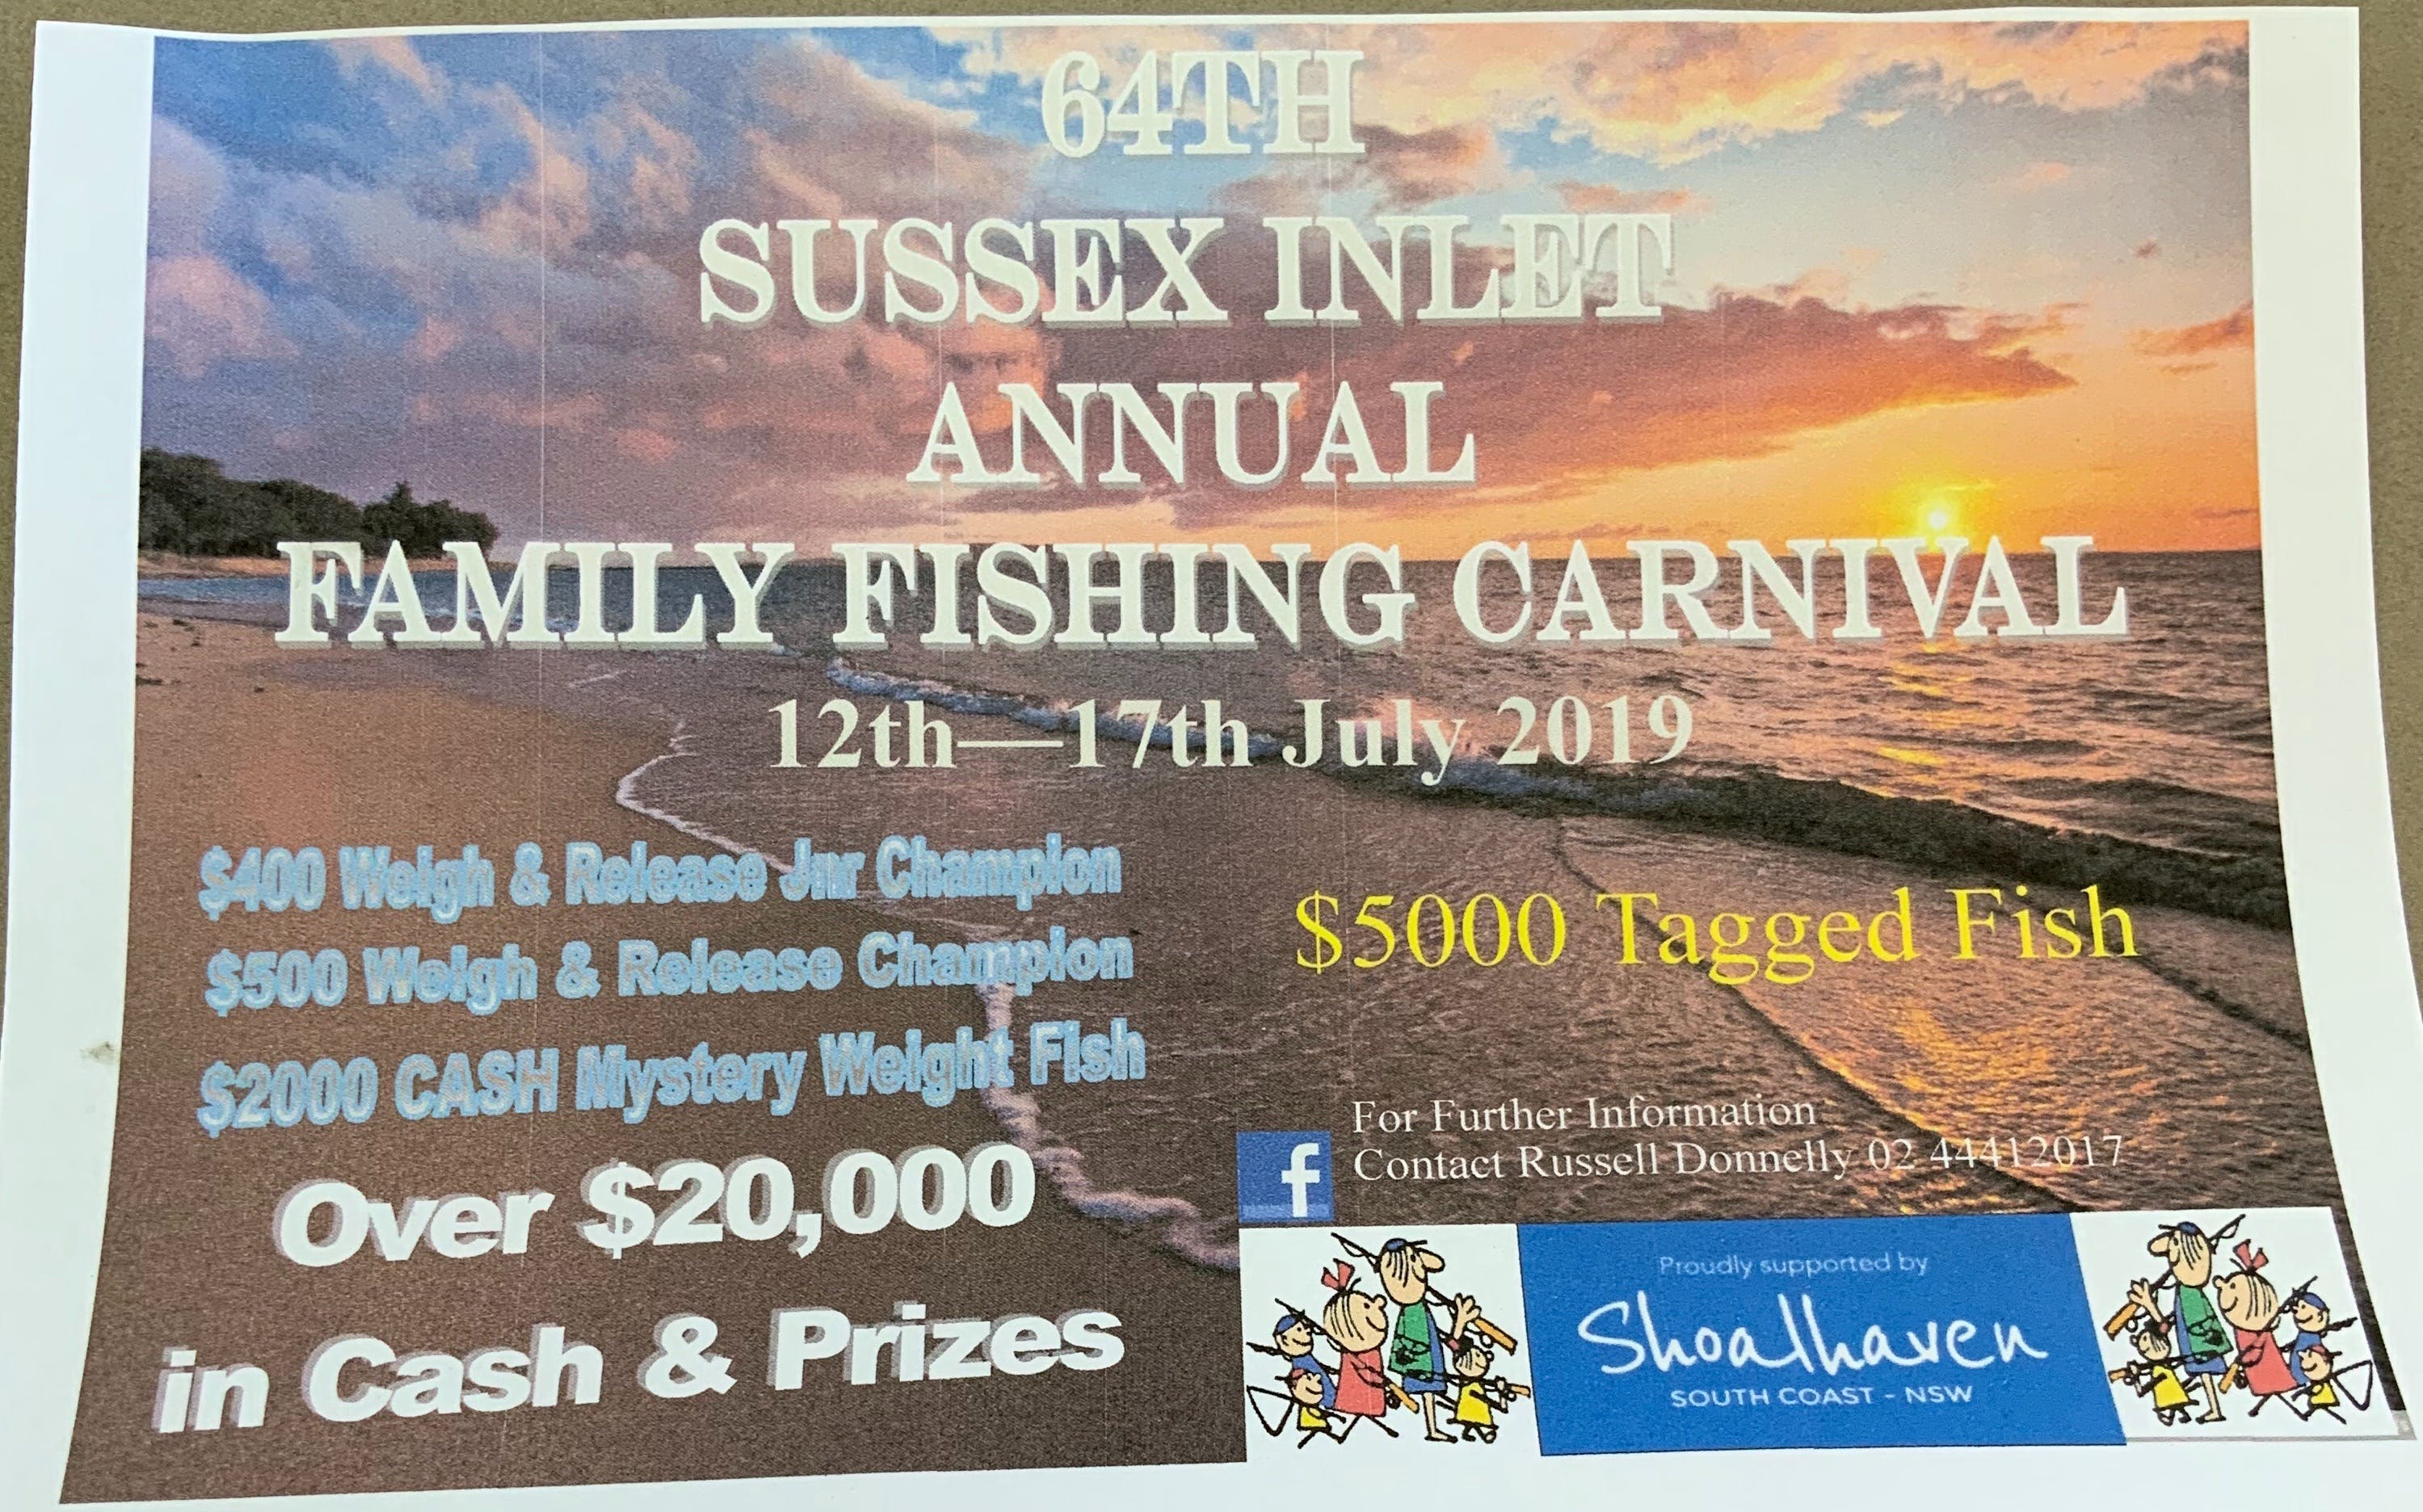 The Sussex Inlet Annual Family Fishing Carnival - Restaurants Sydney